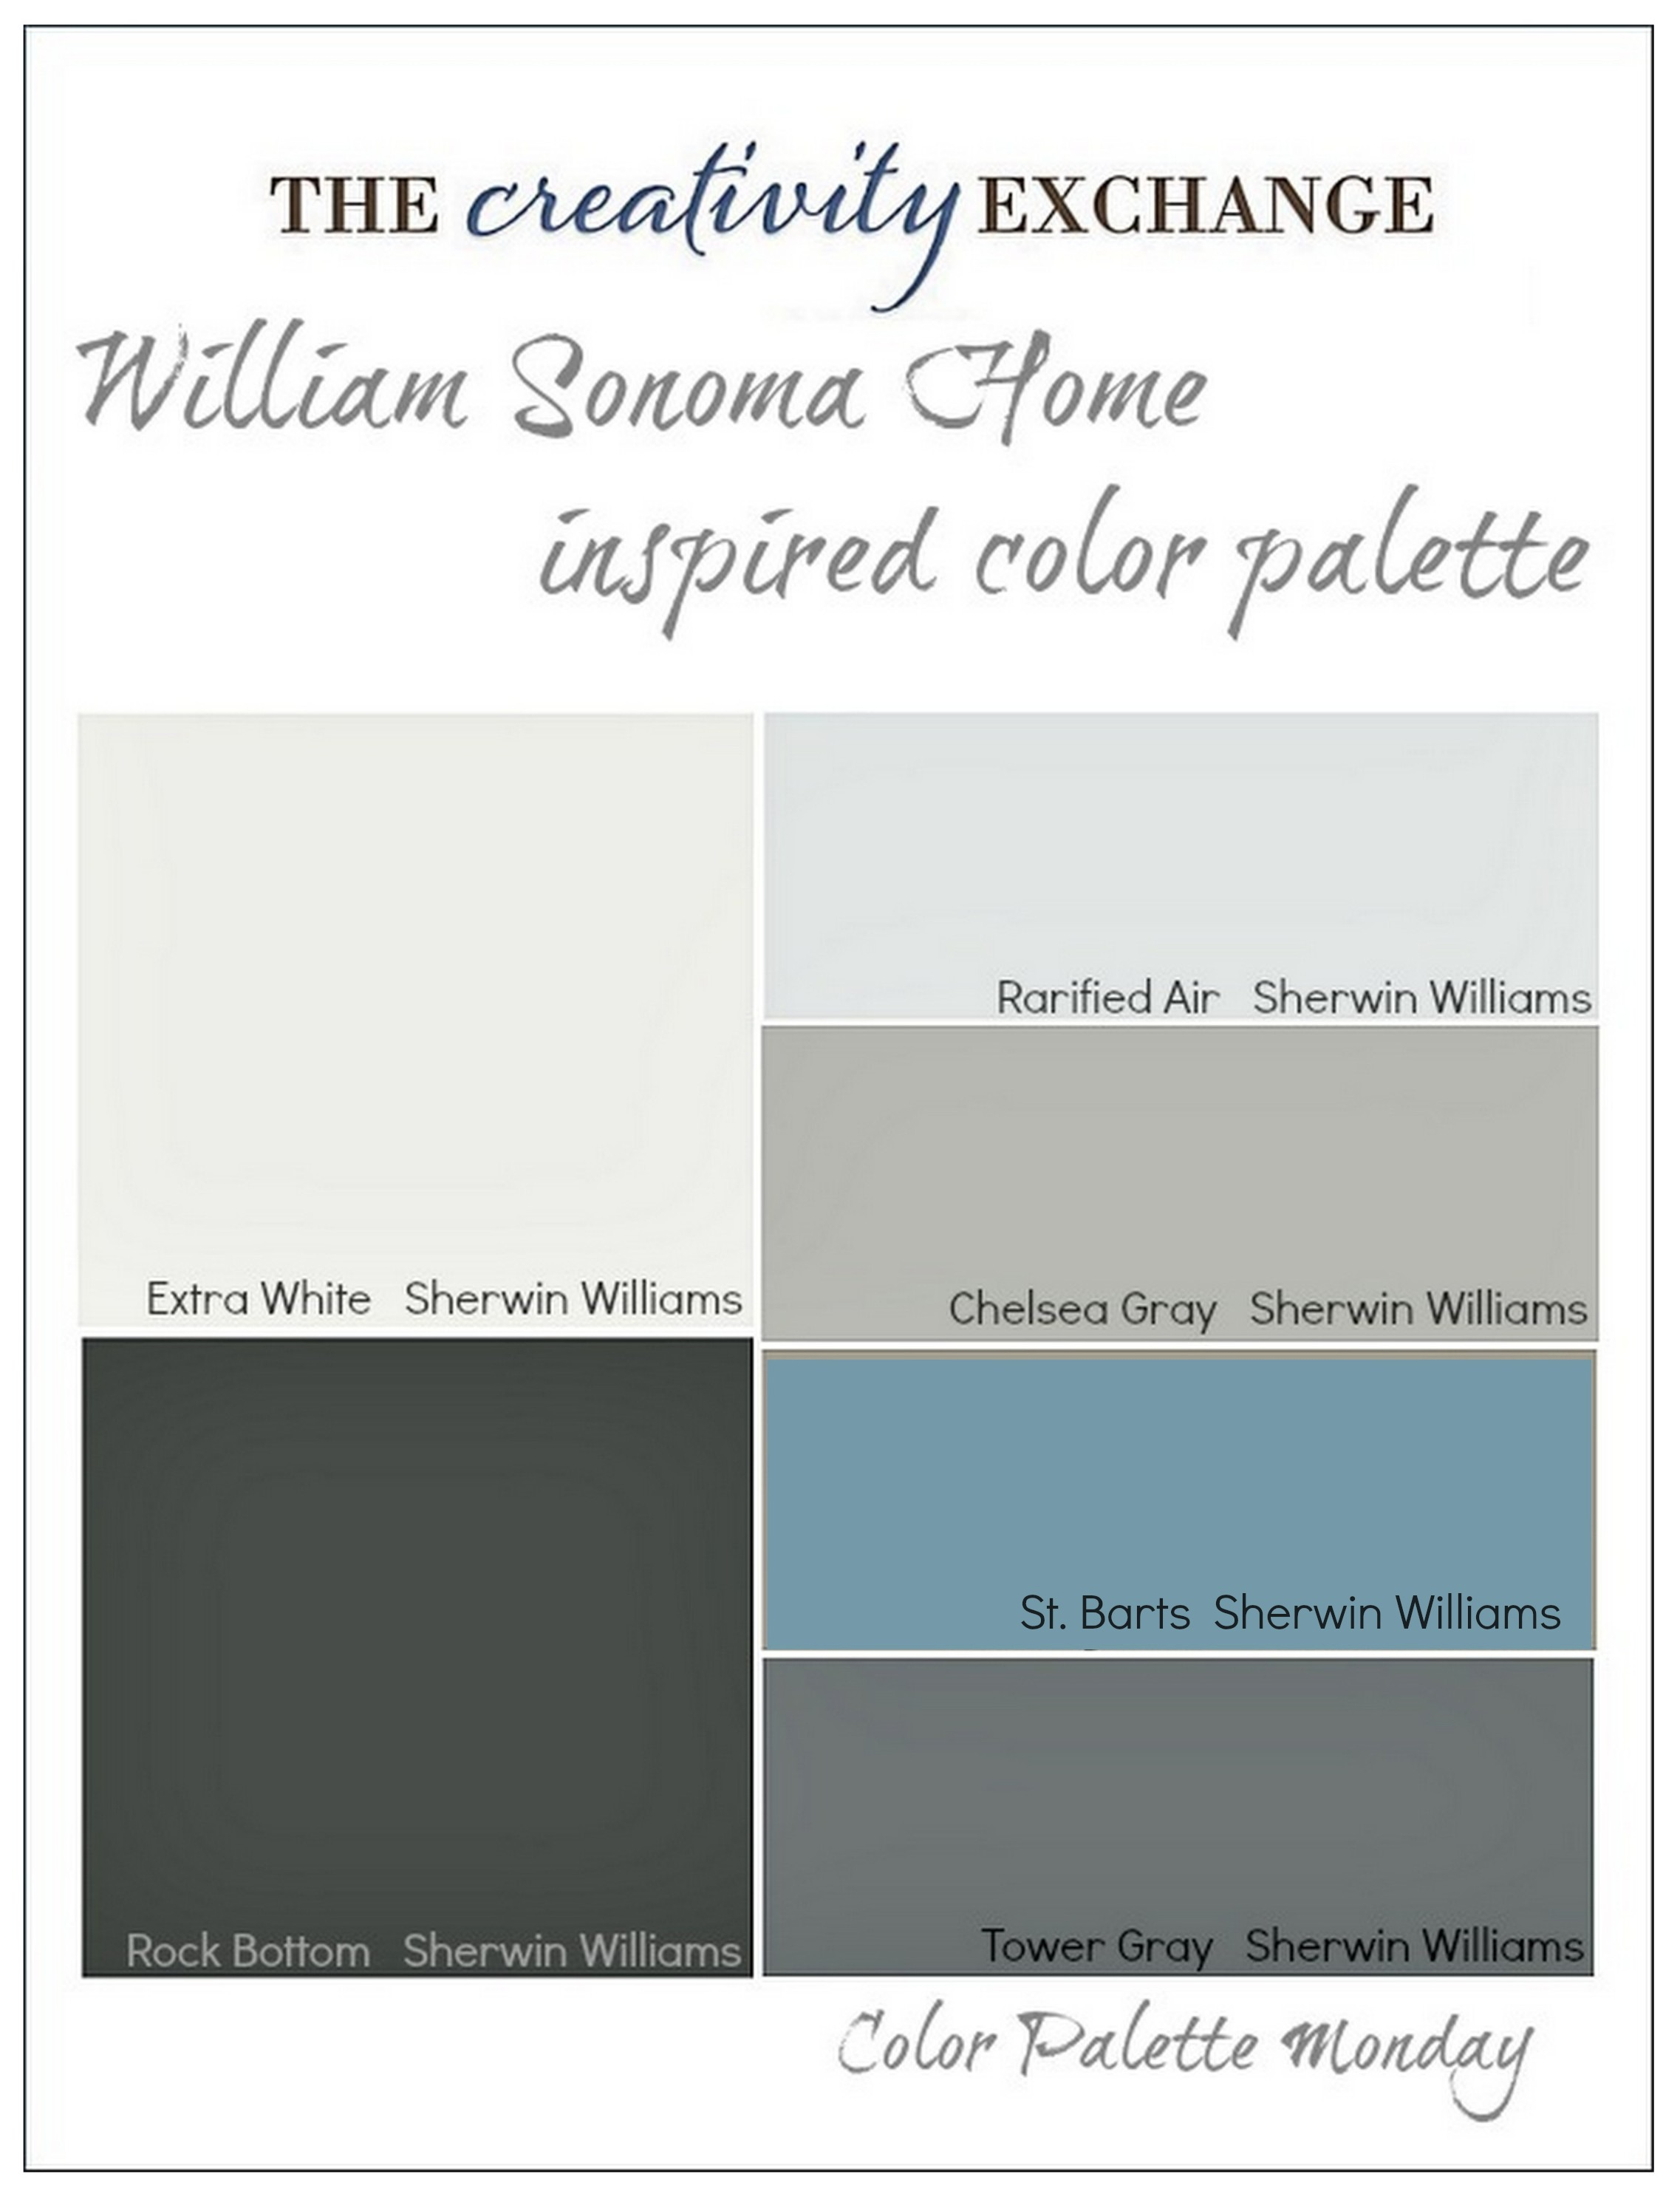 Home Decor Color Palettes home decor color palettes with good images about color palette ideas on fresh William Sonoma Home Inspired Paint Color Palette Color Palette Monday